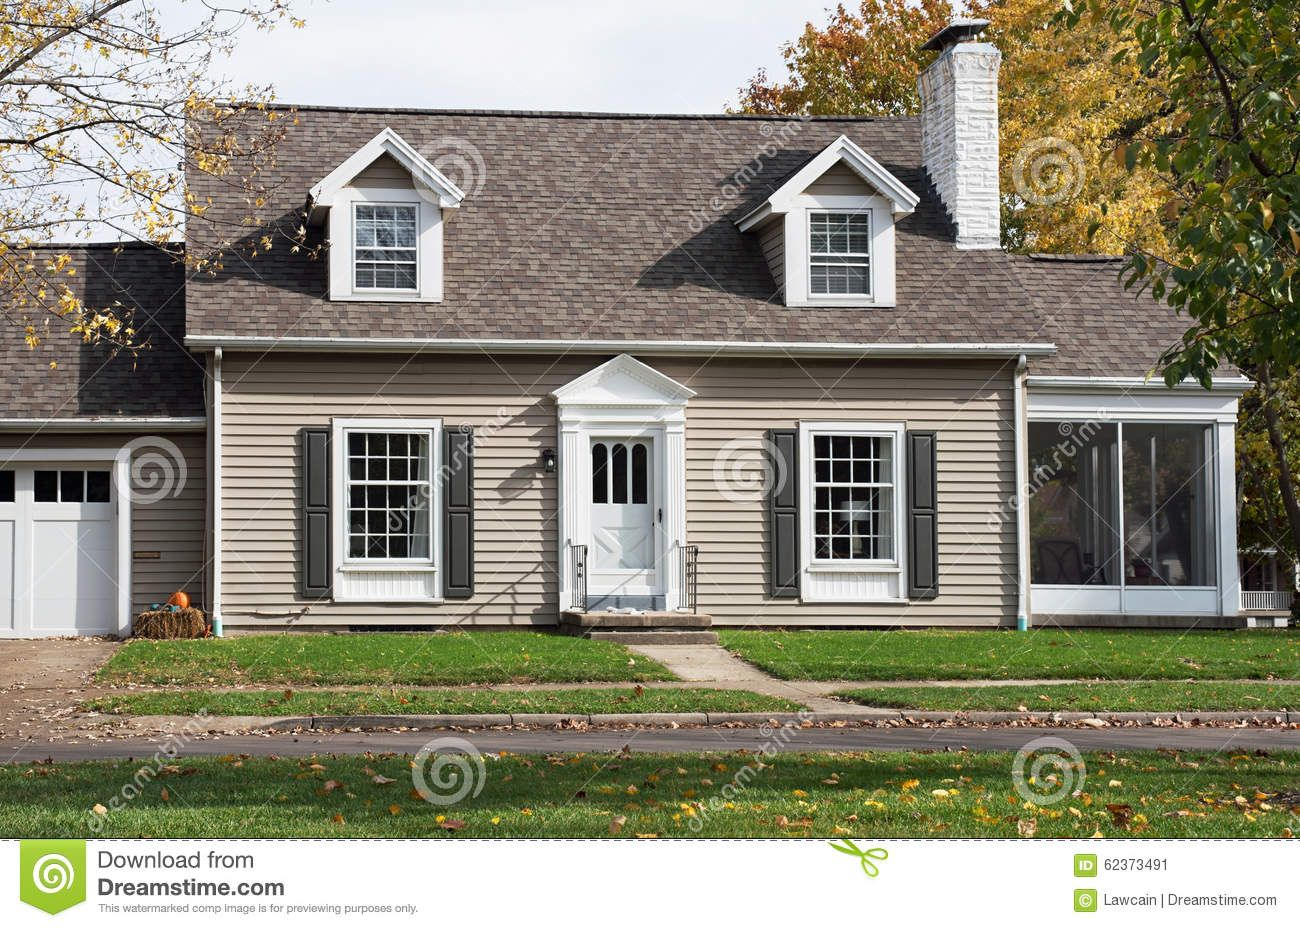 Classic Cape Cod Style House What Is A Cape Cod House A History Of Cape Cod Design Cape Cod Cape Cod House Exterior Cape Cod Style House Cape Style Homes